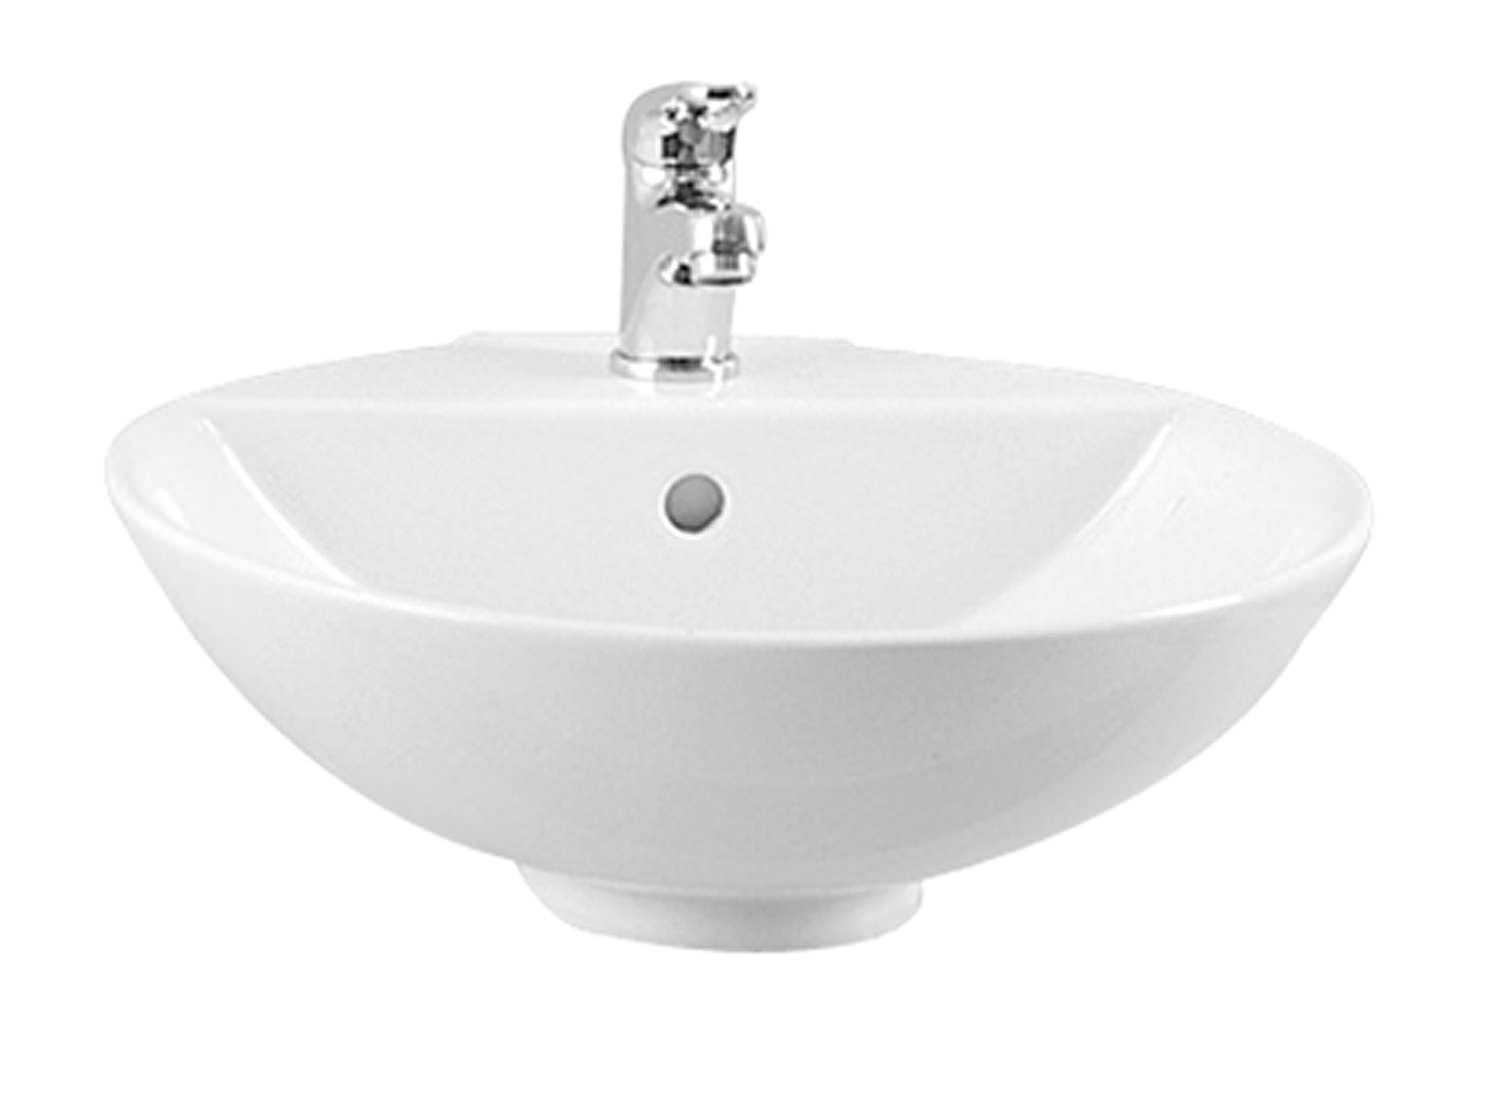 Wondrous Vitra 455 X 460Mm Countertop Basin Download Free Architecture Designs Viewormadebymaigaardcom